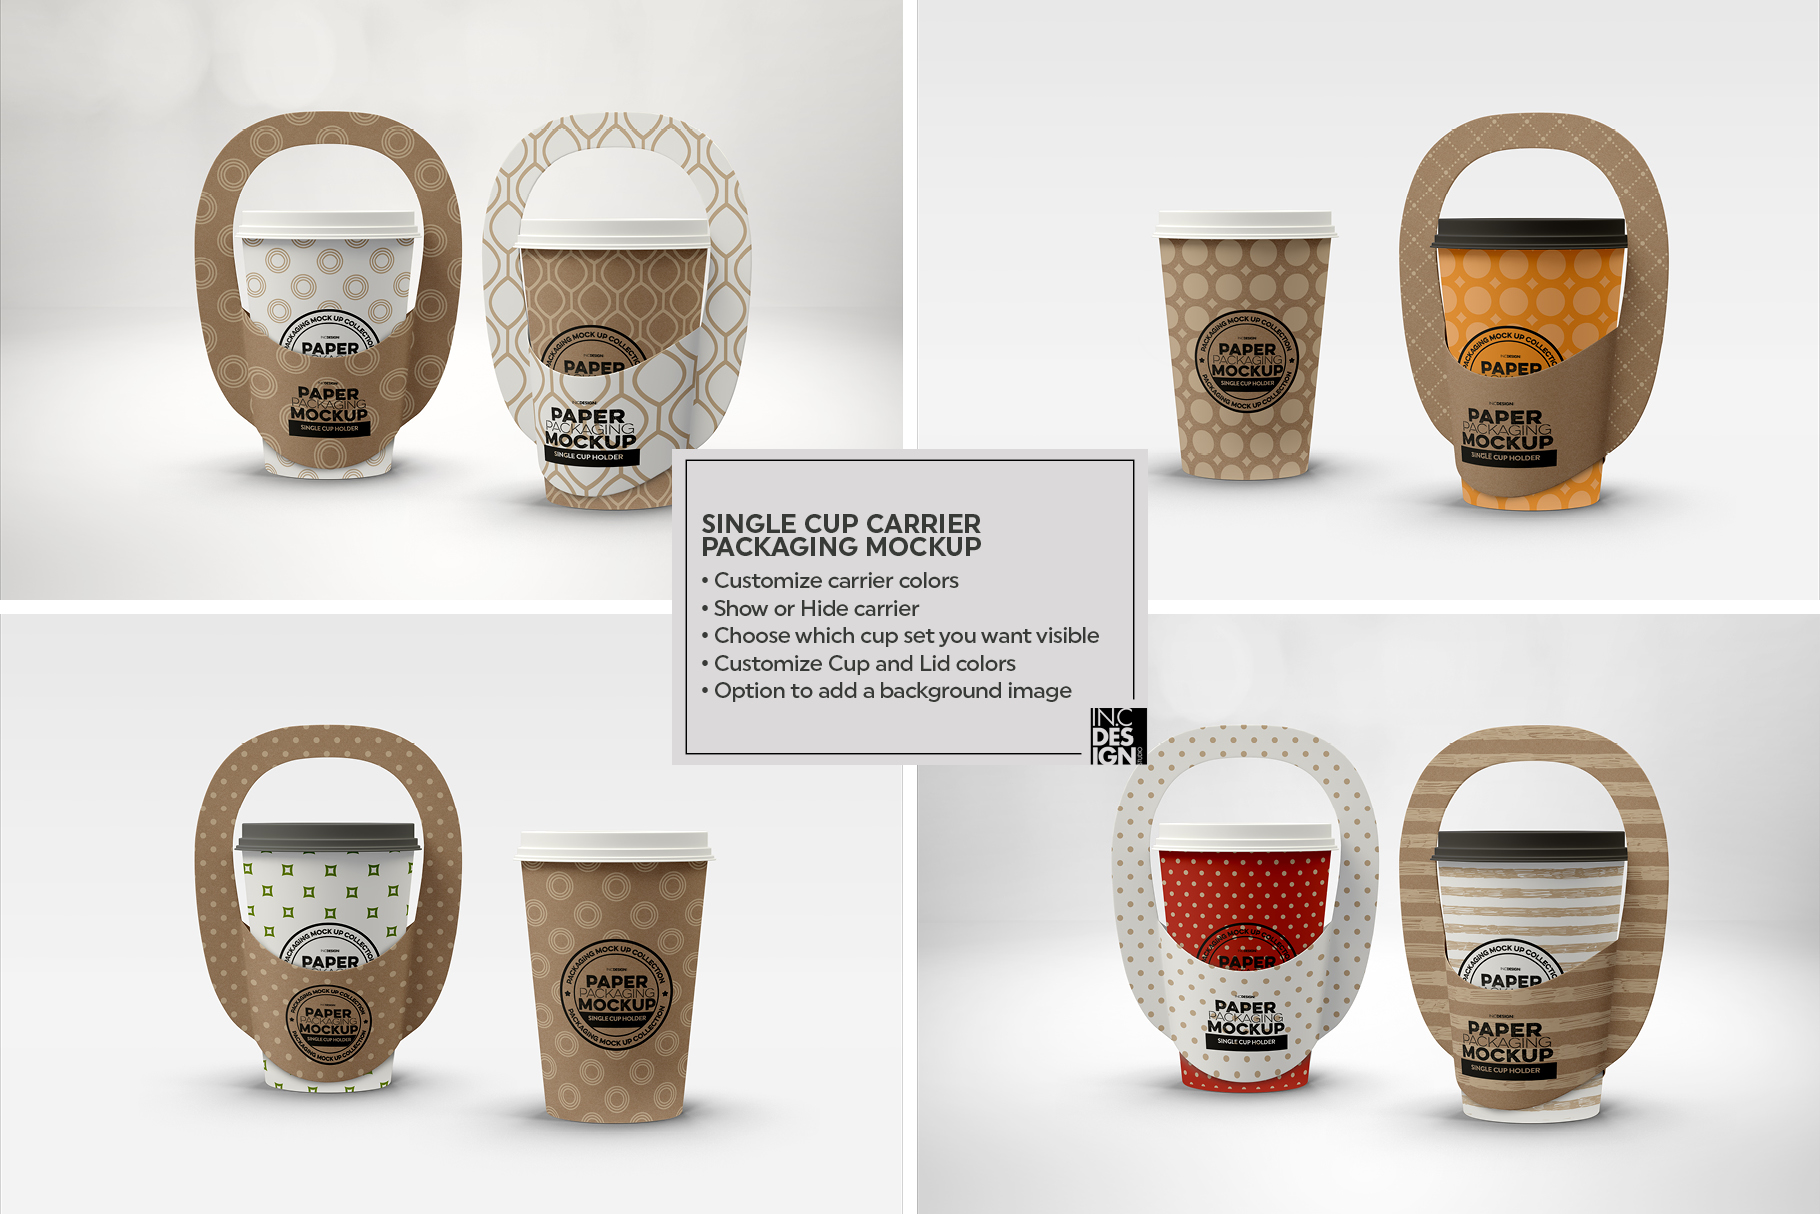 Single Cup Paper Carrier Packaging Mockup example image 2